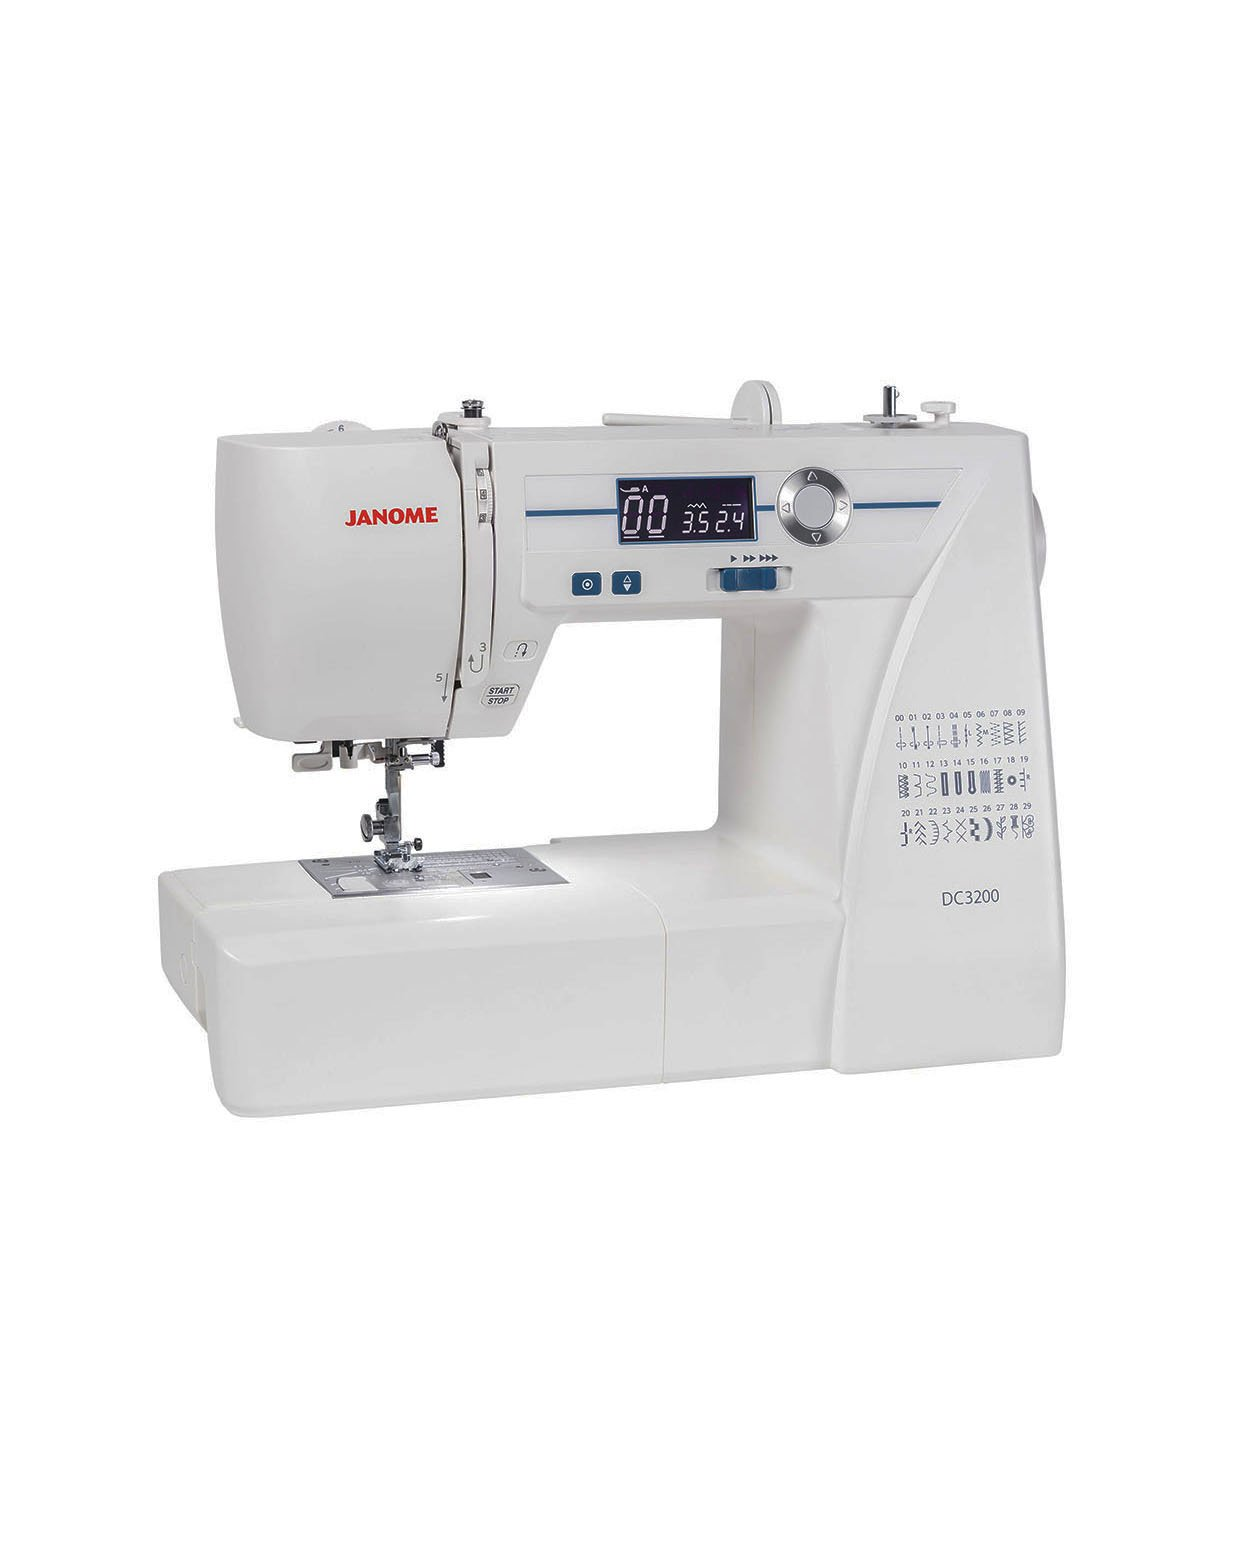 JANOME DC3200 Basic Beginner Computerised Electronic Sewing Machine